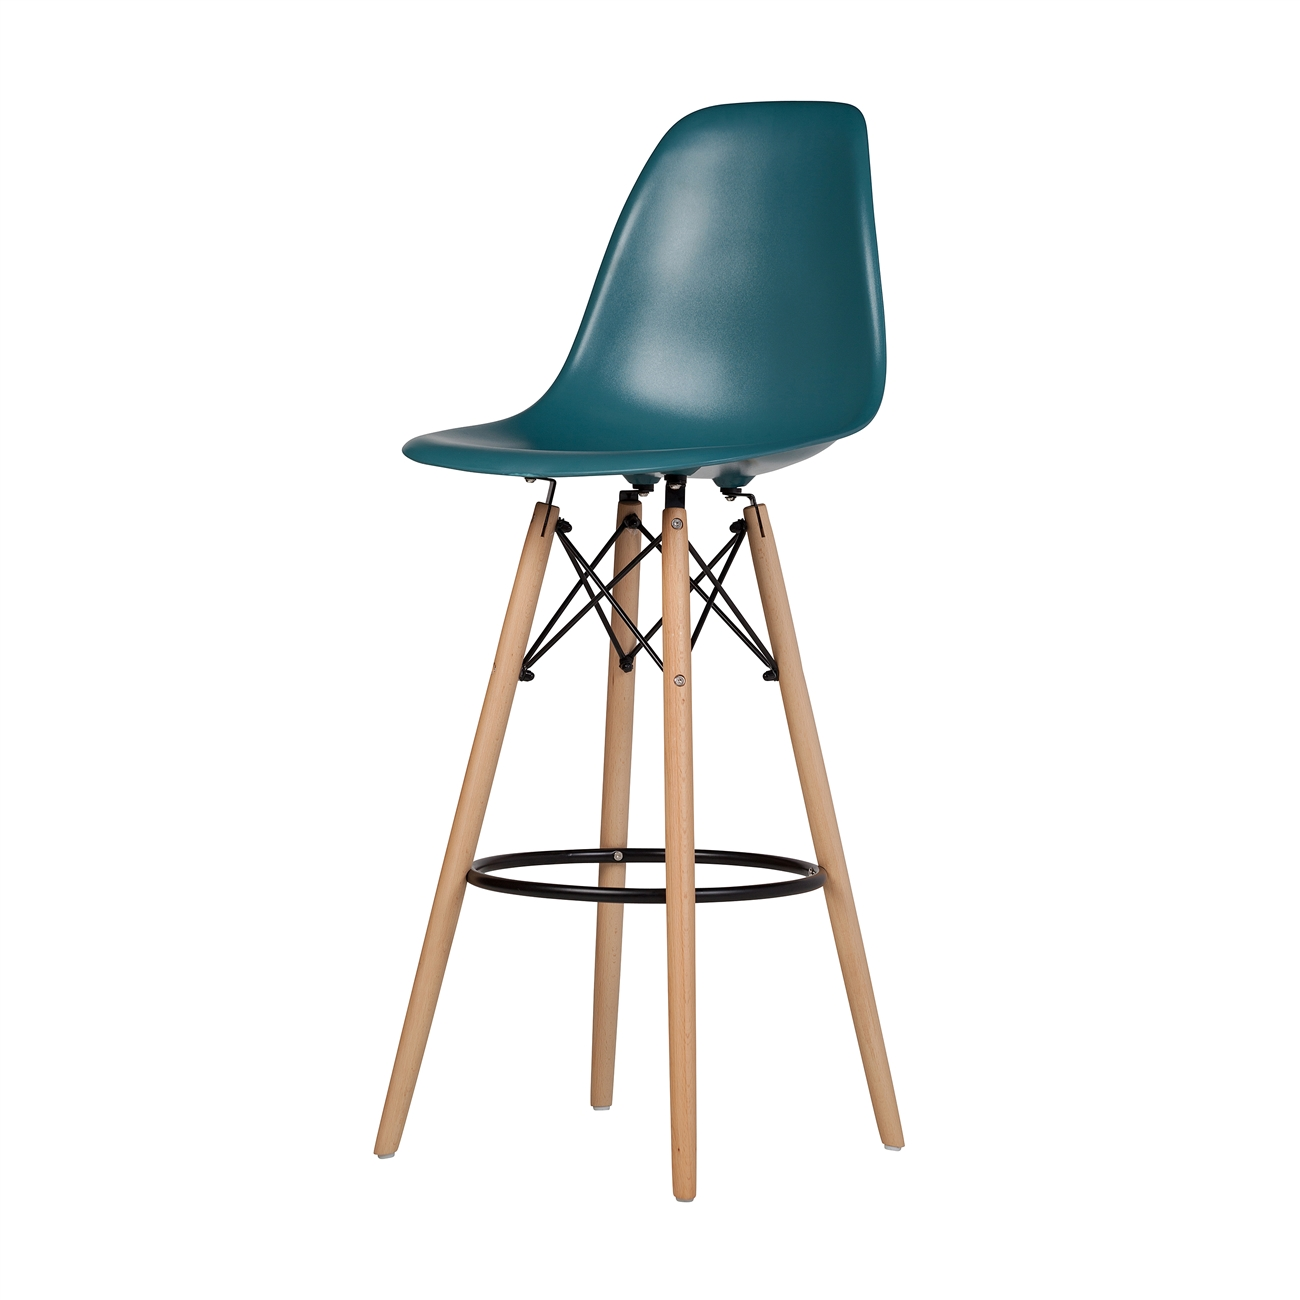 Charles Eames Style DSW Bar Stool   Teal Blue Larger Photo Email A Friend